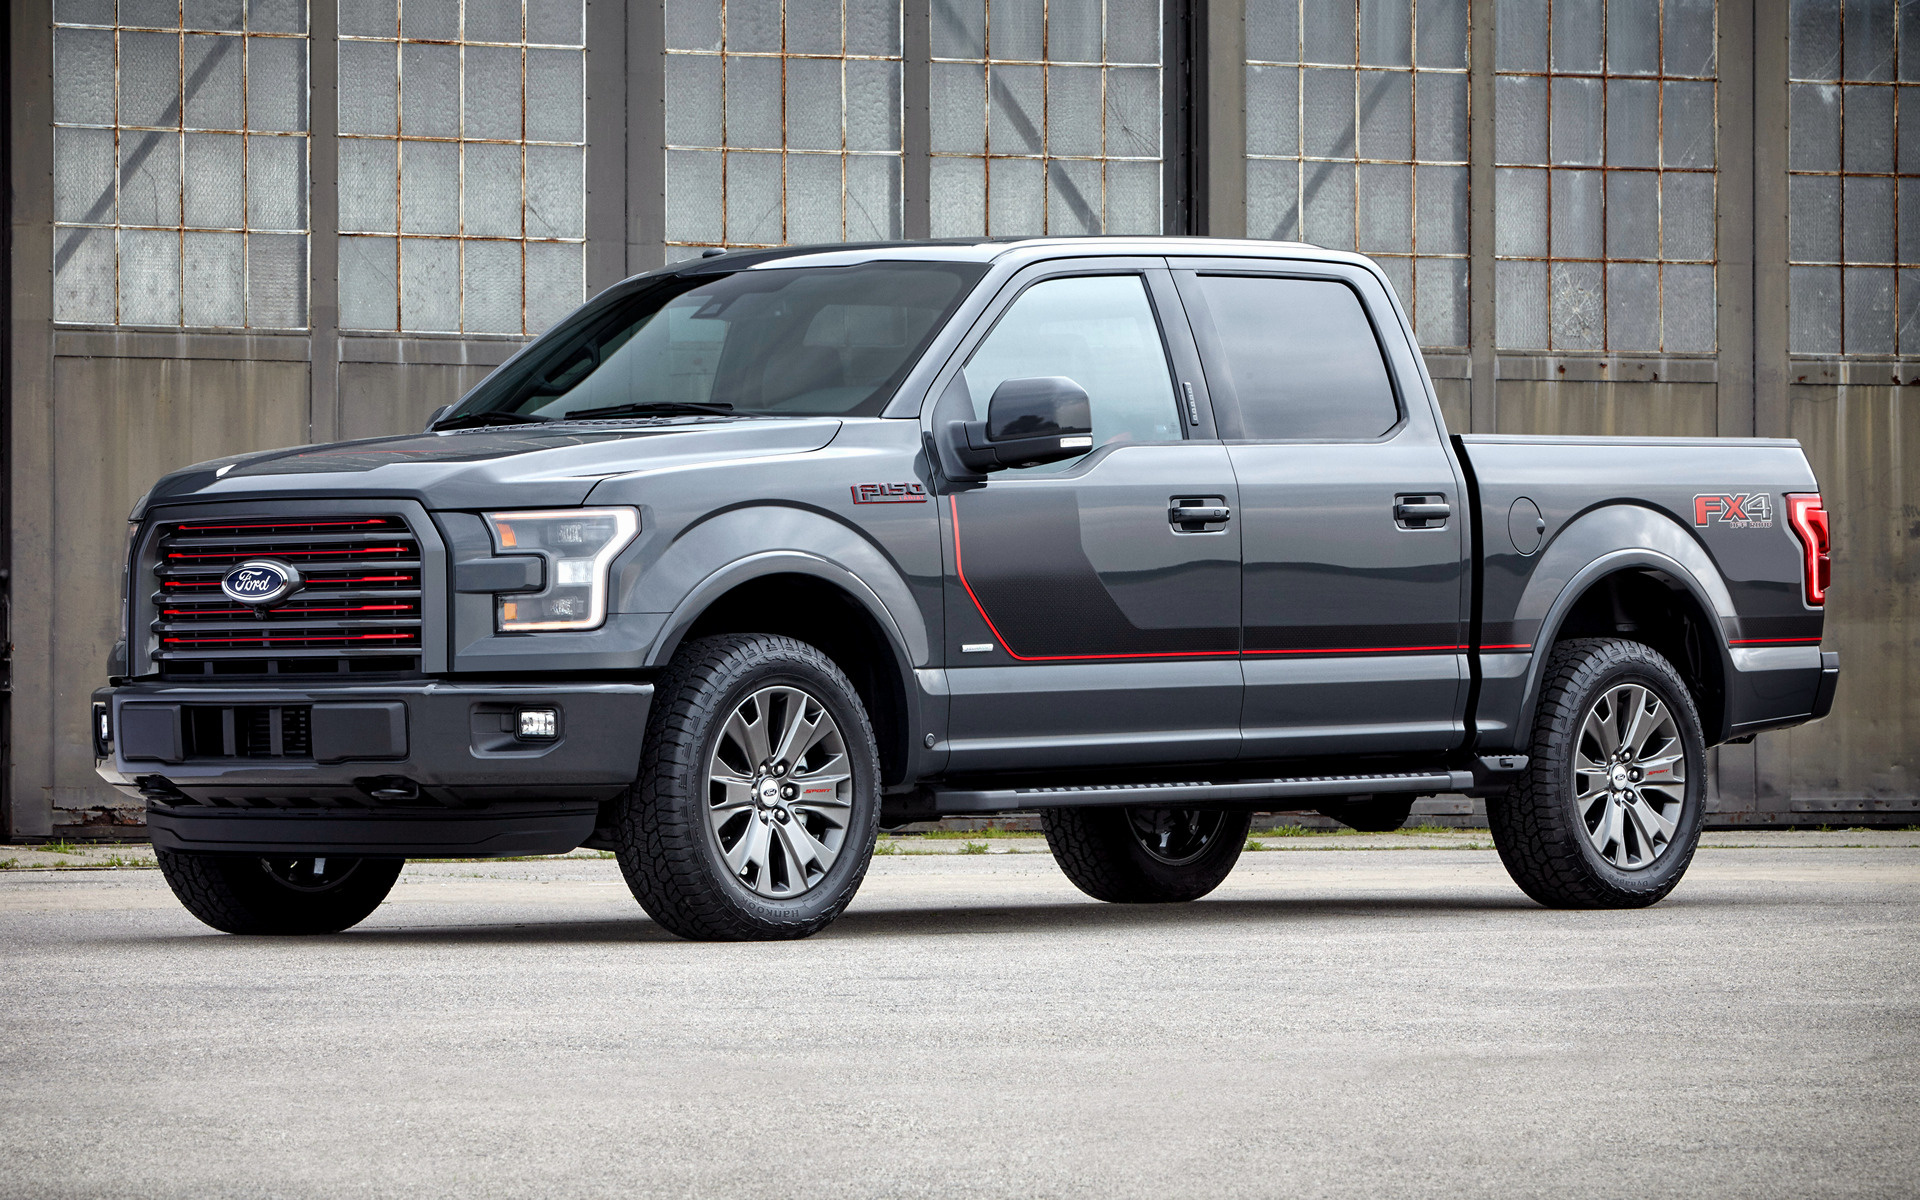 2016 Ford F-150 Lariat FX4 SuperCrew Appearance Package - Wallpapers and HD Images | Car Pixel